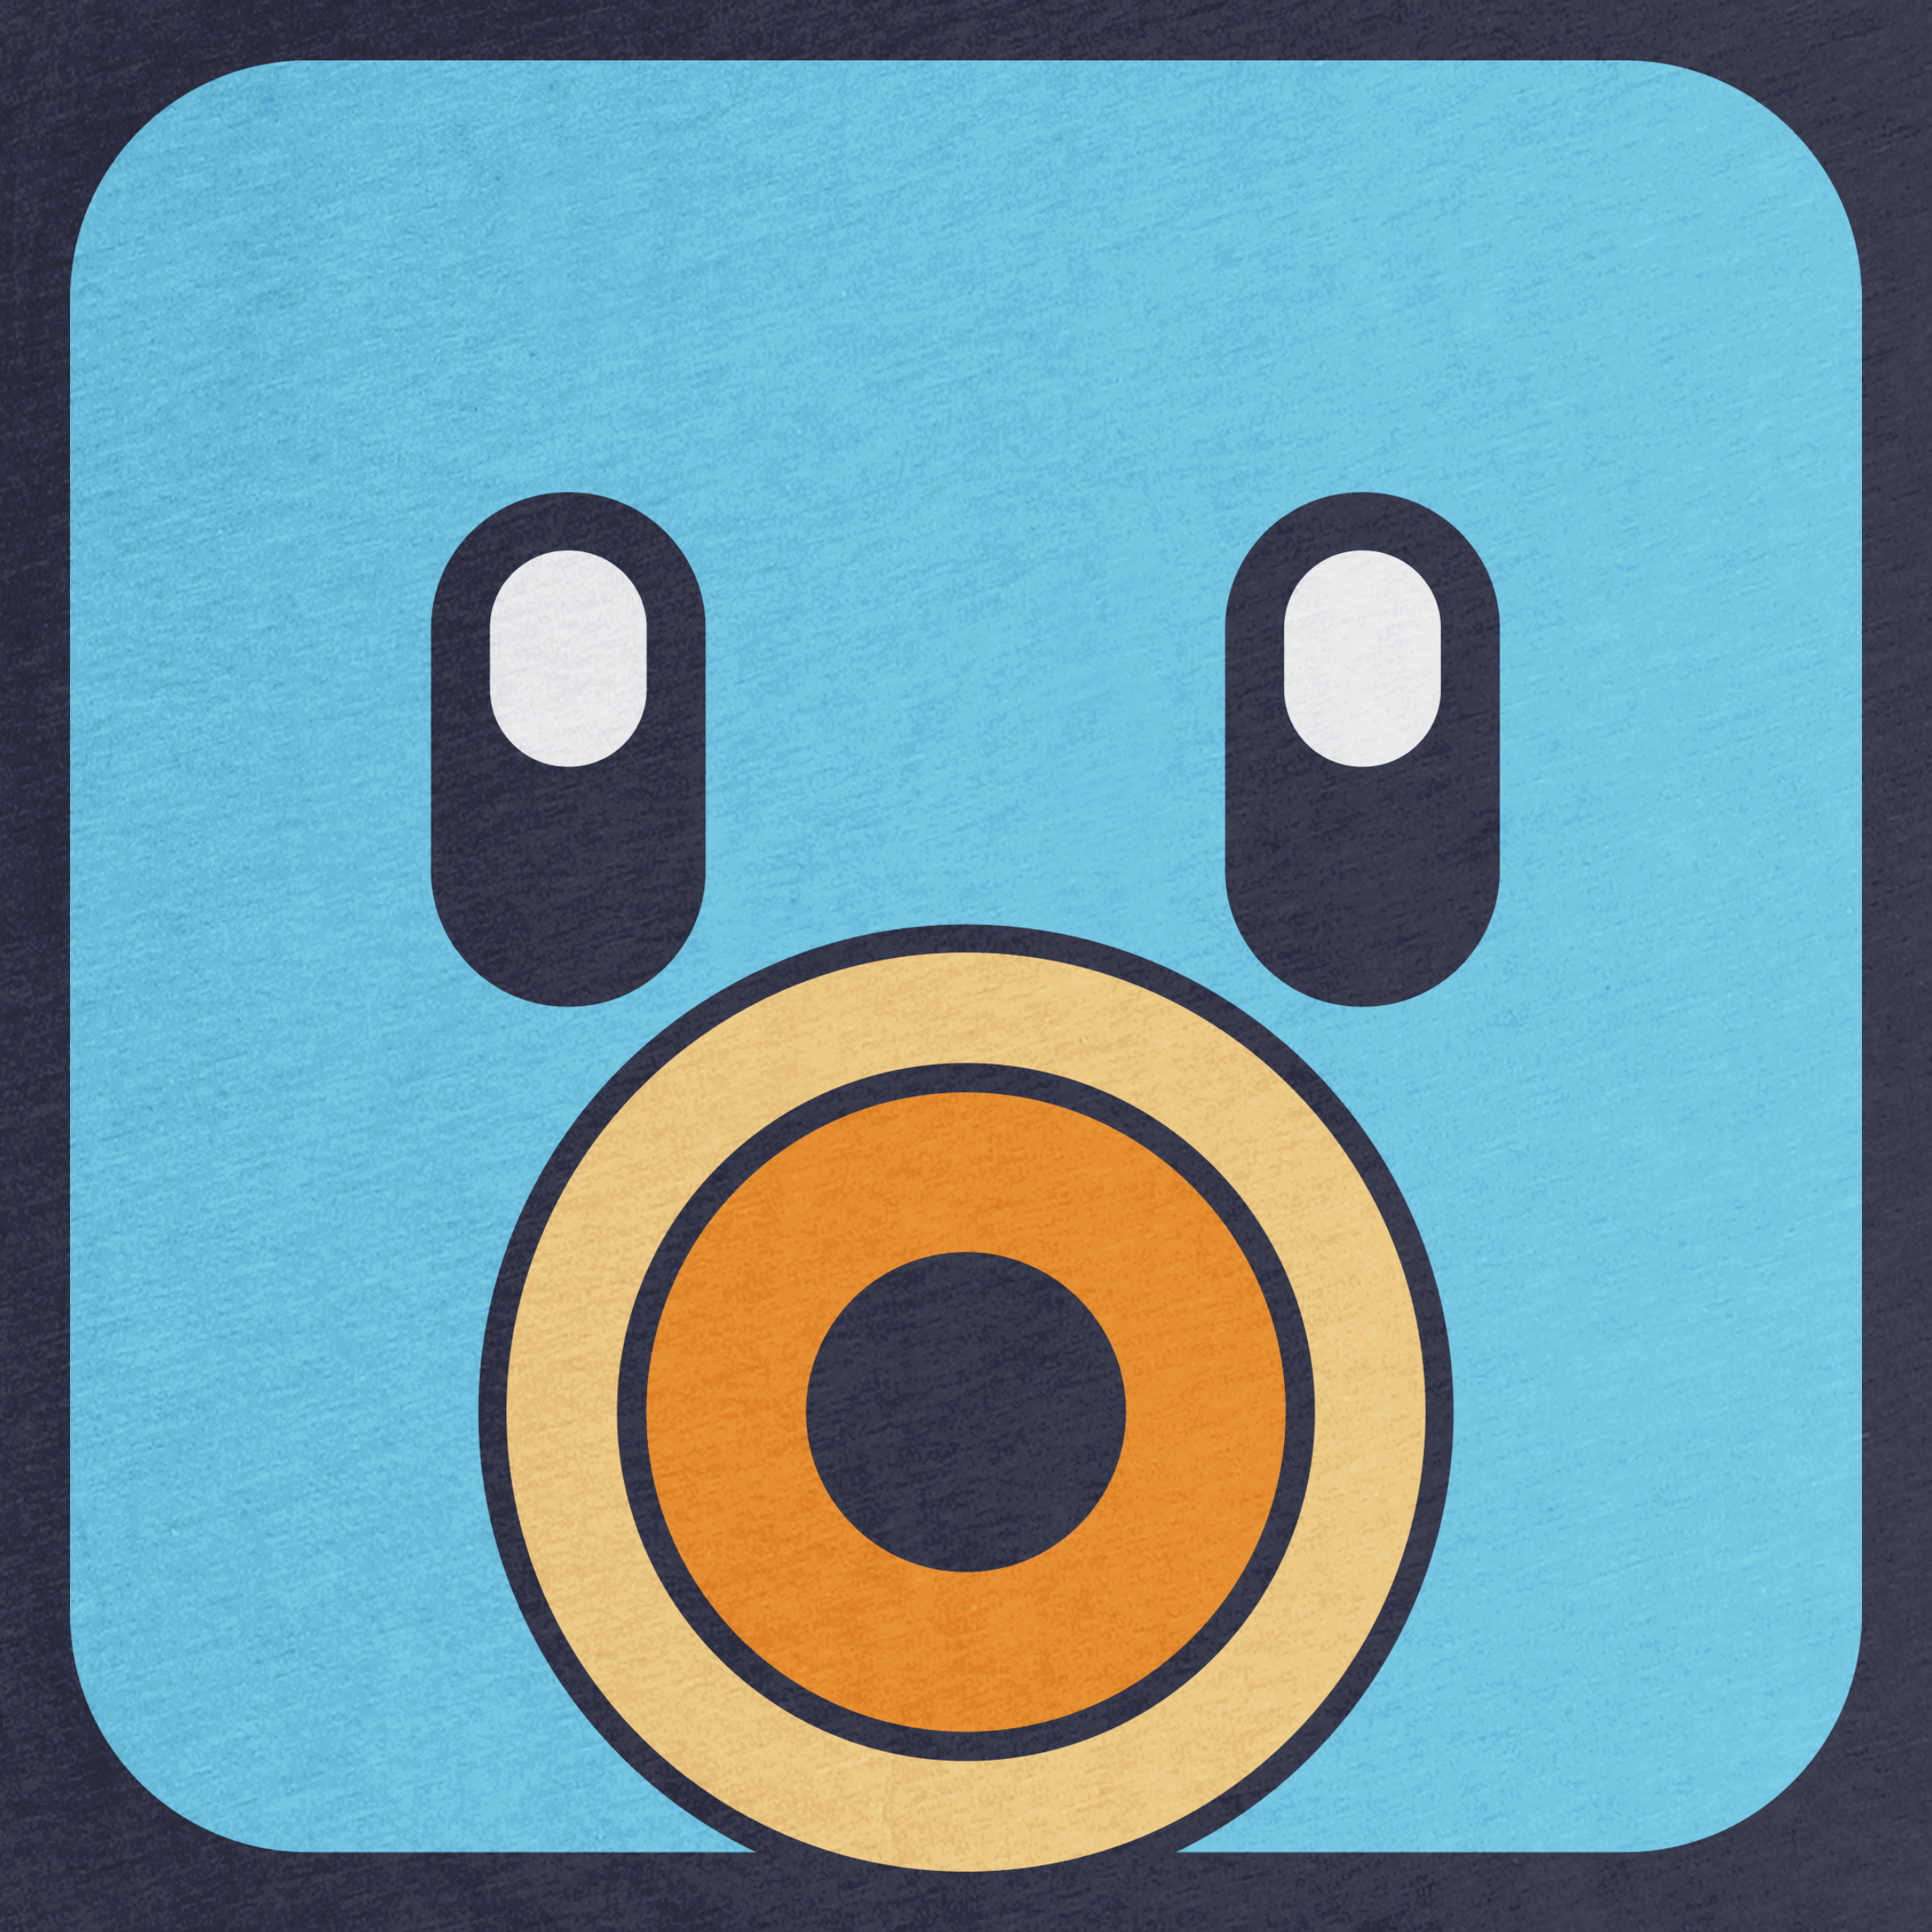 Tweetbot Detail